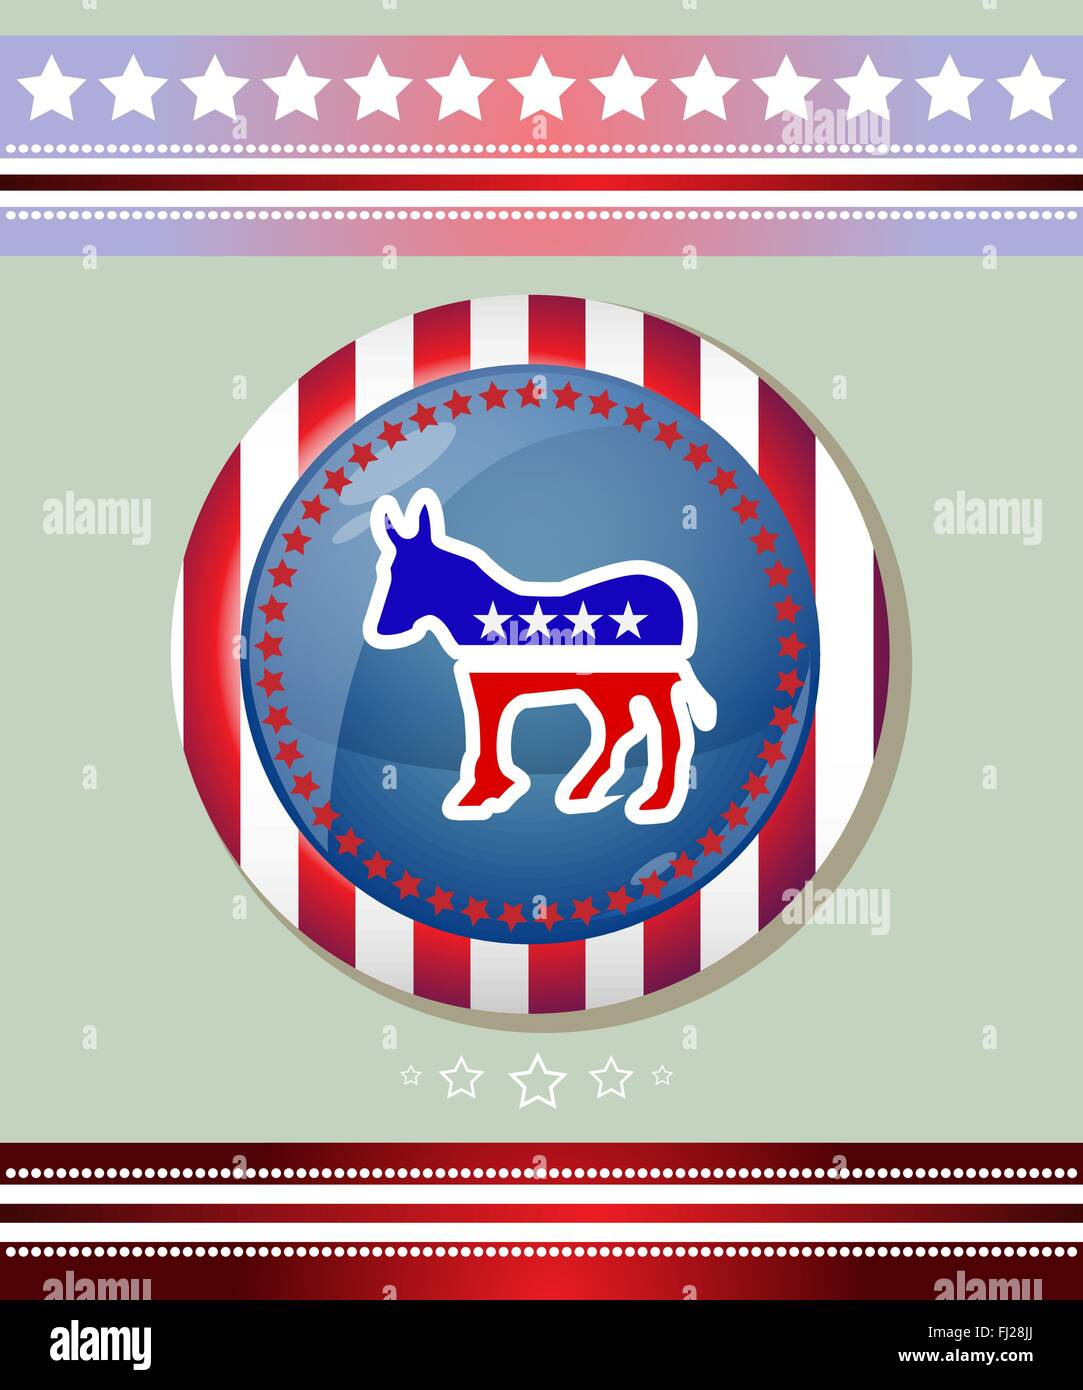 Democratic party social promotion banner donkey symbol badge stock democratic party social promotion banner donkey symbol badge election day campaign ad flyer american flags symbolic elements biocorpaavc Image collections